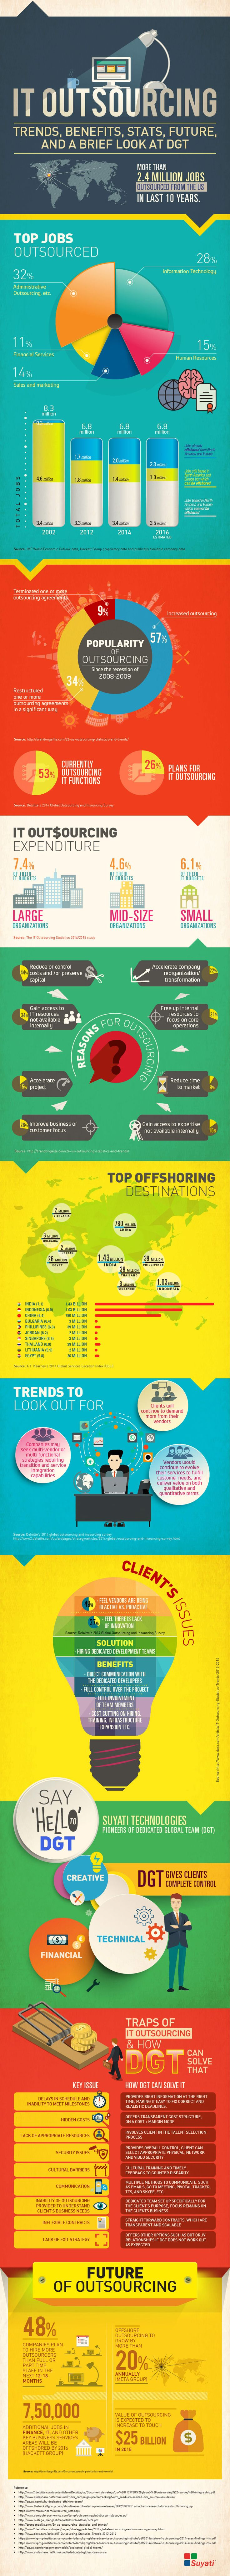 Global IT #Outsourcing Trends & Statistics in 2015